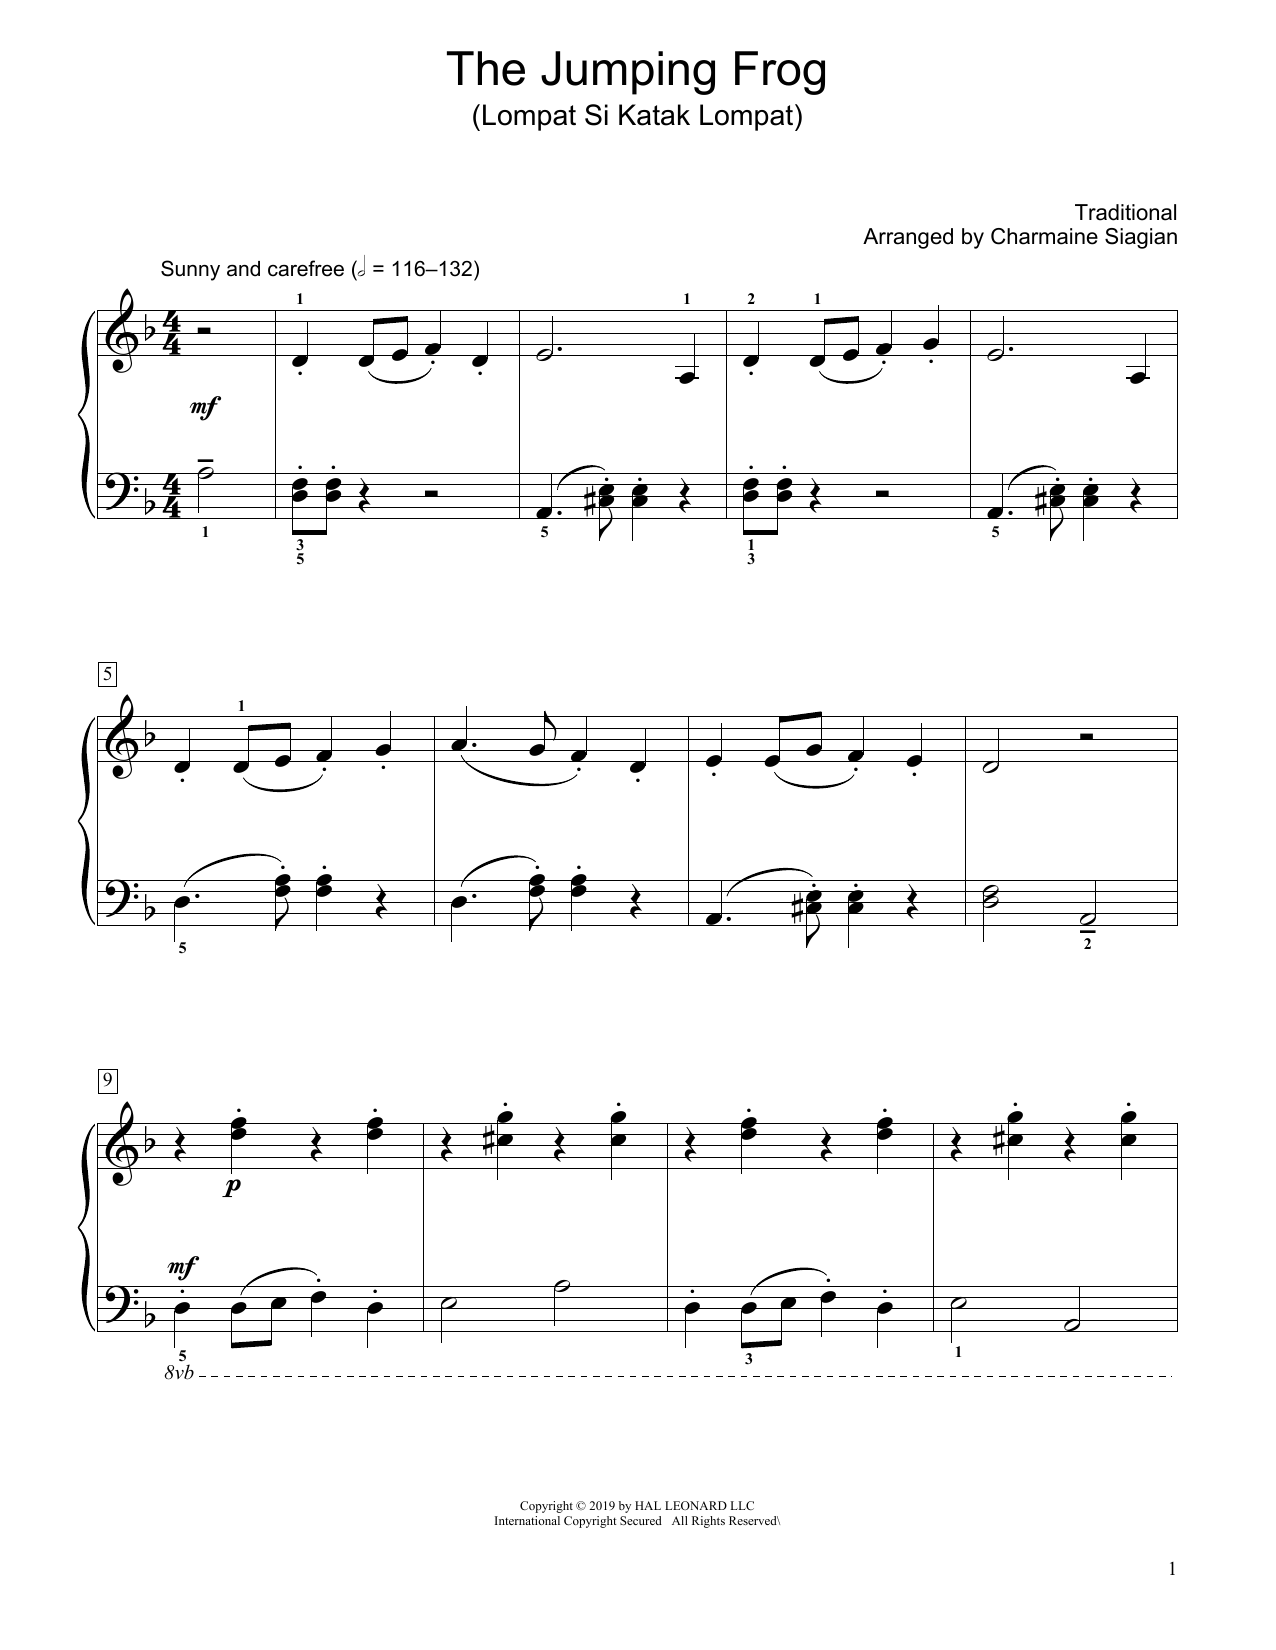 Traditional The Jumping Frog (Lompat Si Katak Lompat) (arr. Charmaine Siagian) sheet music notes and chords. Download Printable PDF.